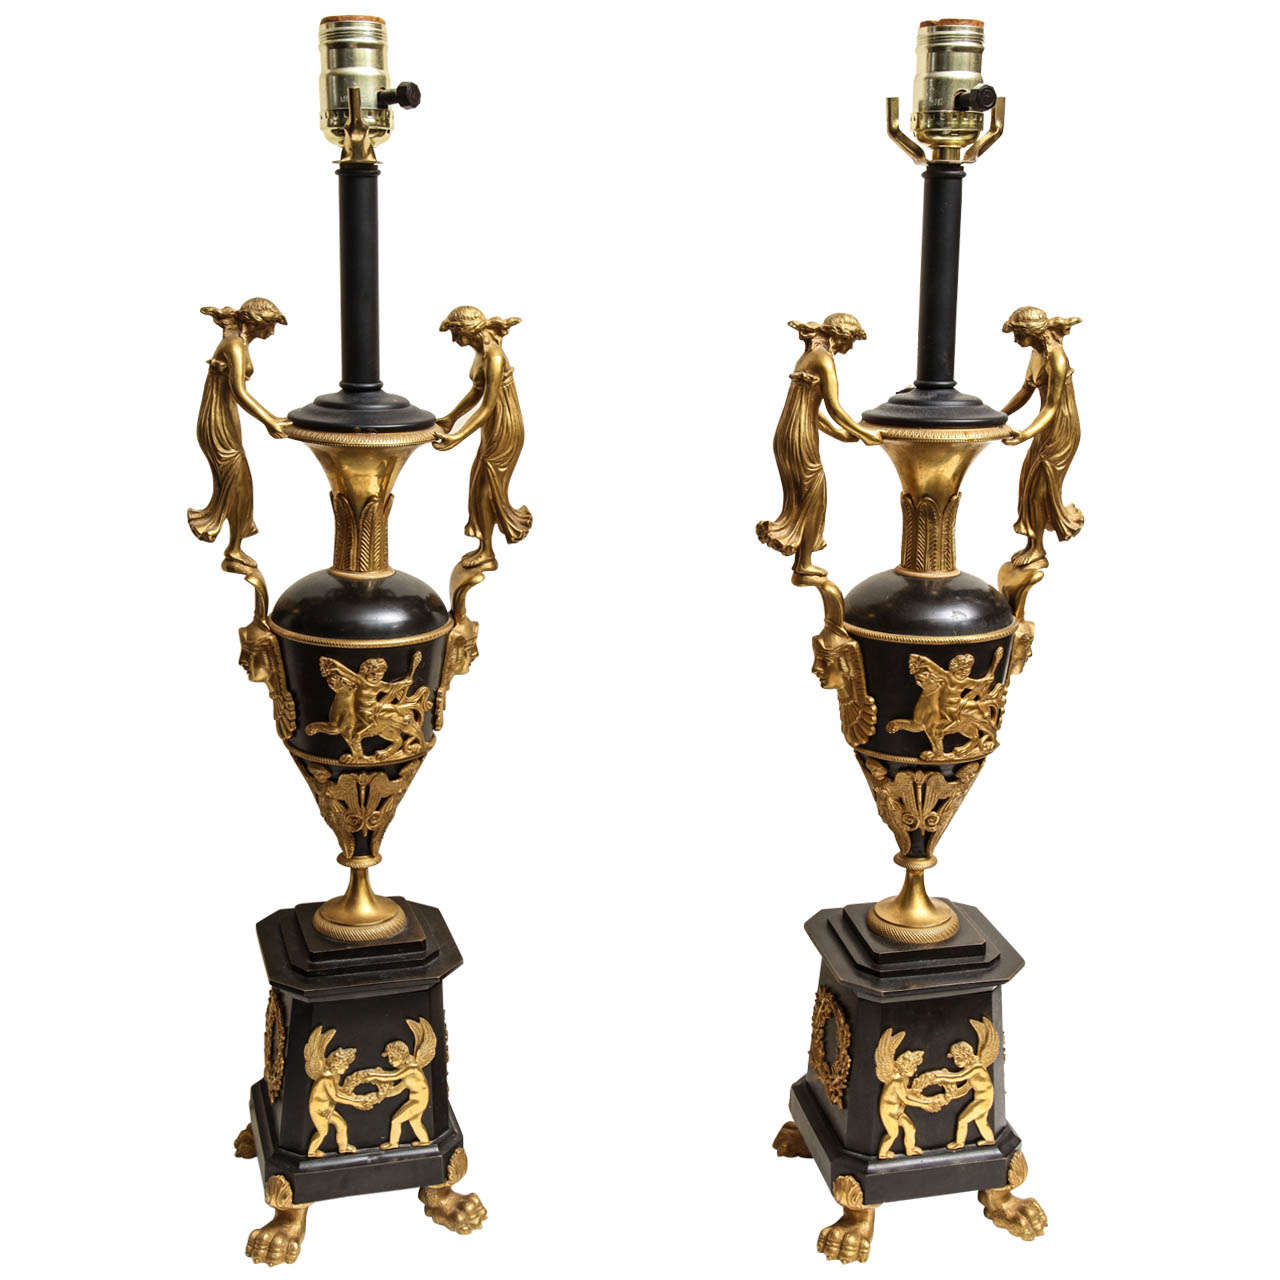 Pair of Neoclassical Russian Empire Style Figural Lamps For Sale